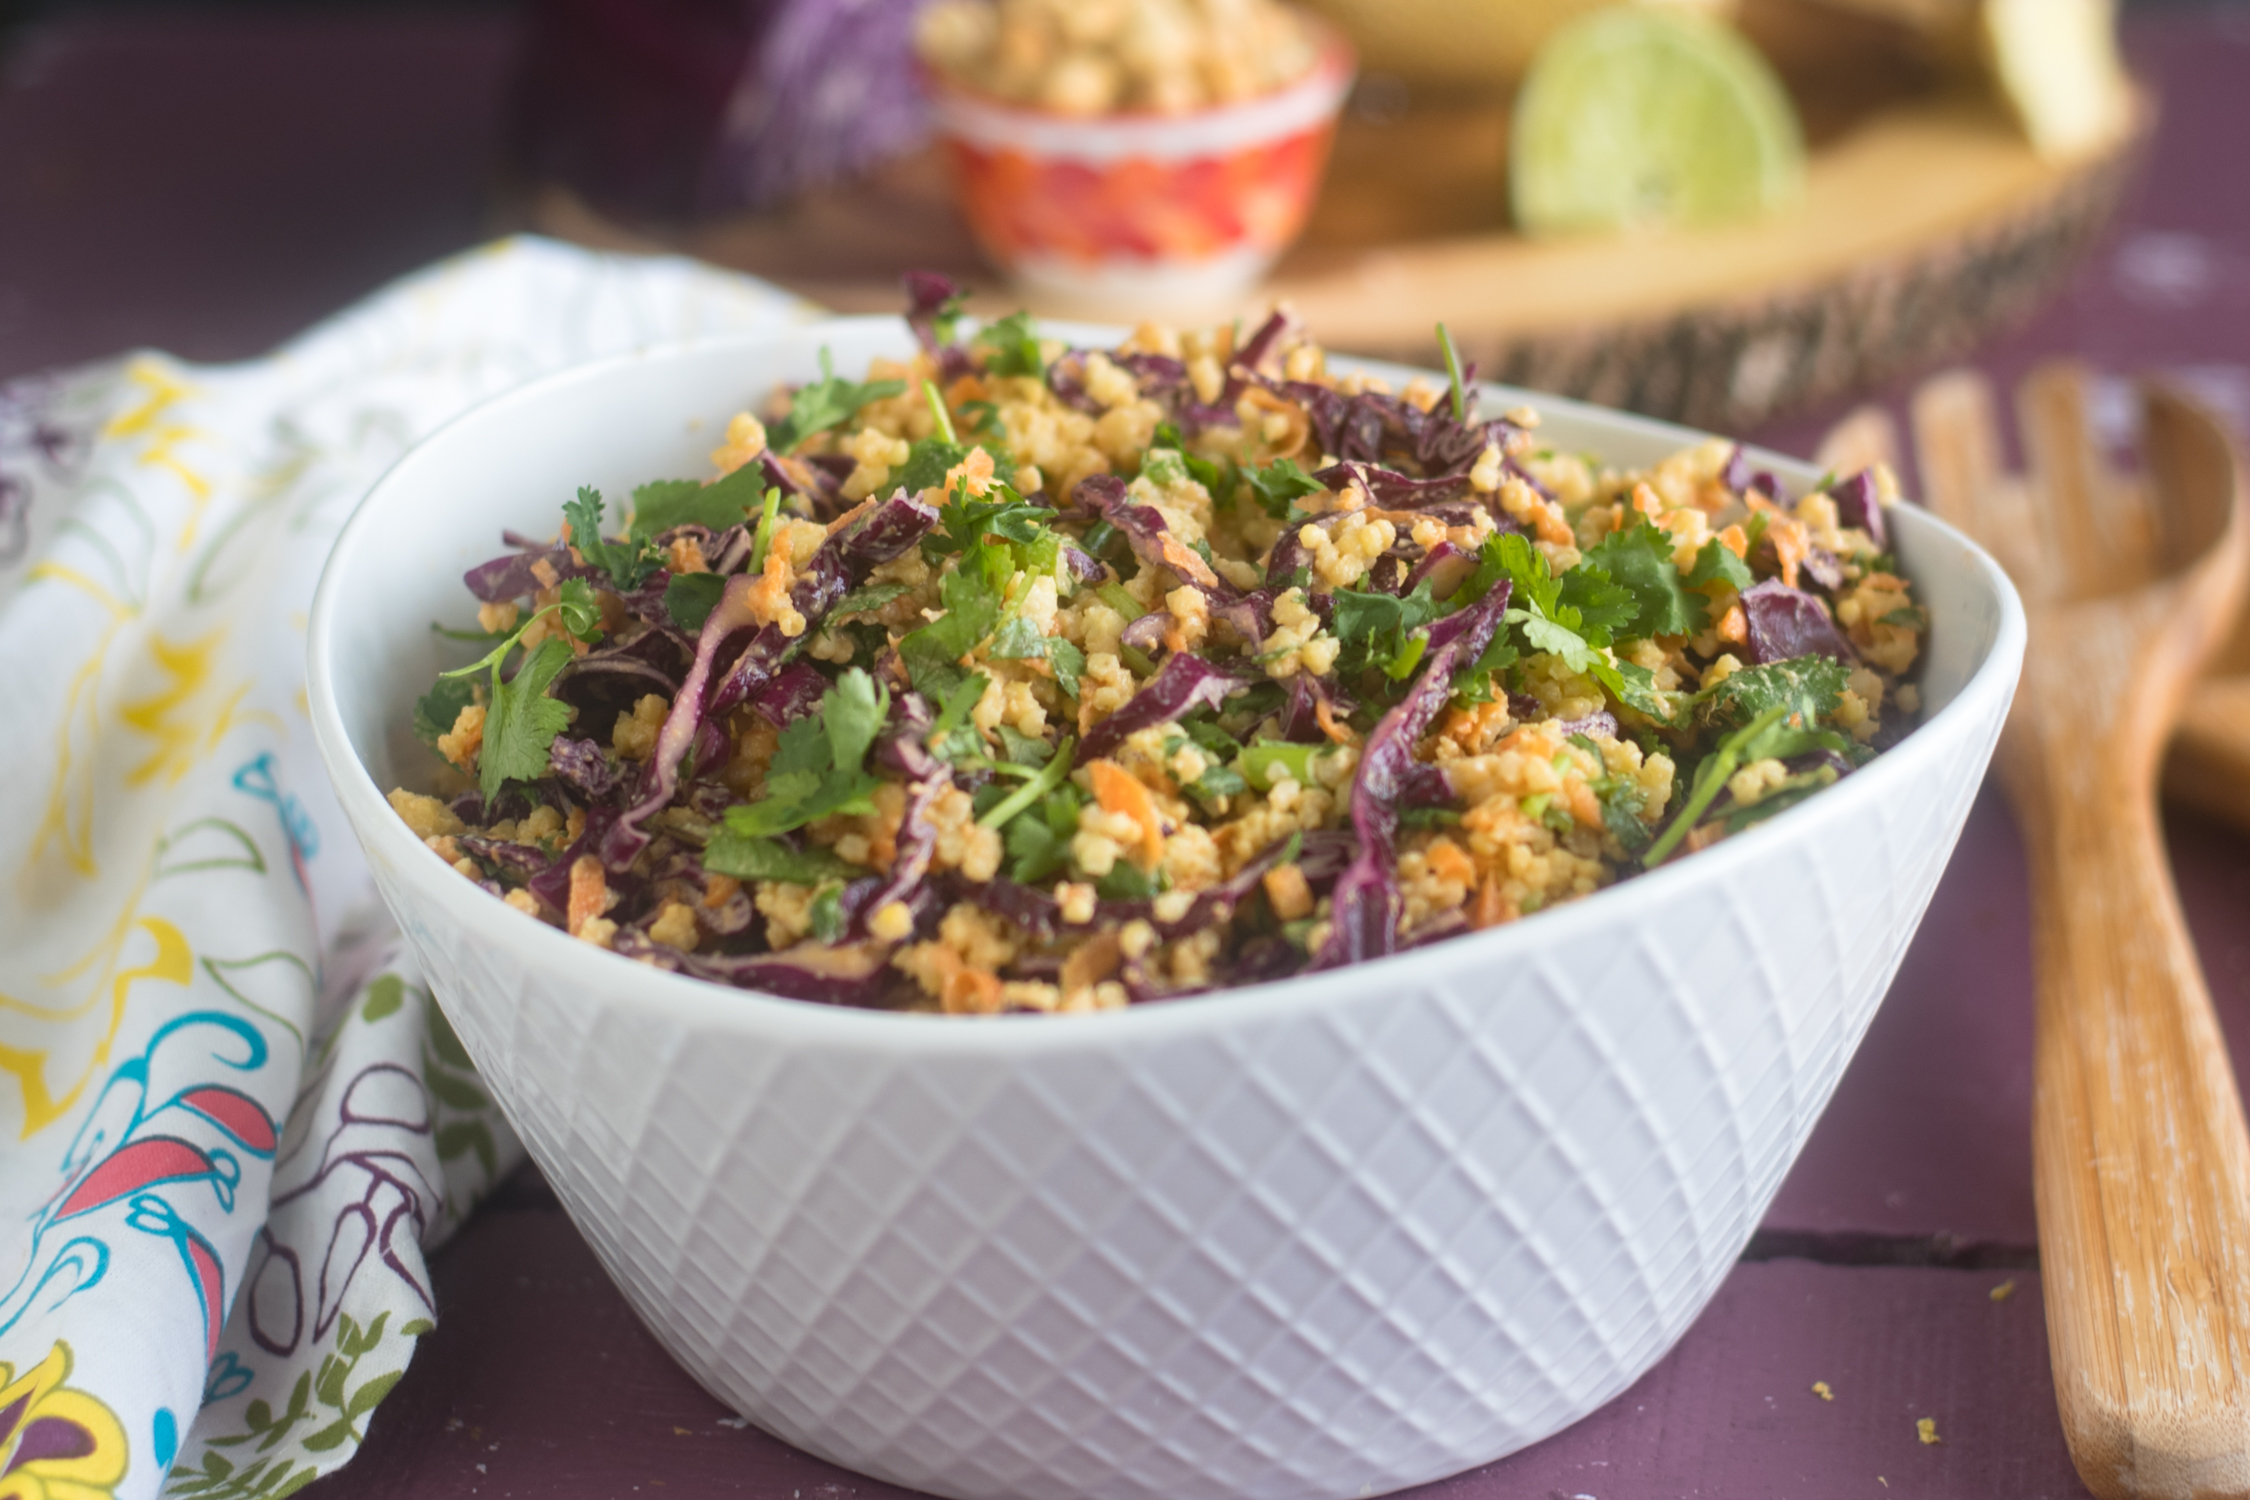 The base of this Vegan Thai Peanut Millet Salad is cooled millet, shredded red cabbage, carrots, green onions, and cilantro. The millet bulks up the salad, adding fiber, B-complex vitamins, as well as several essential amino acids.